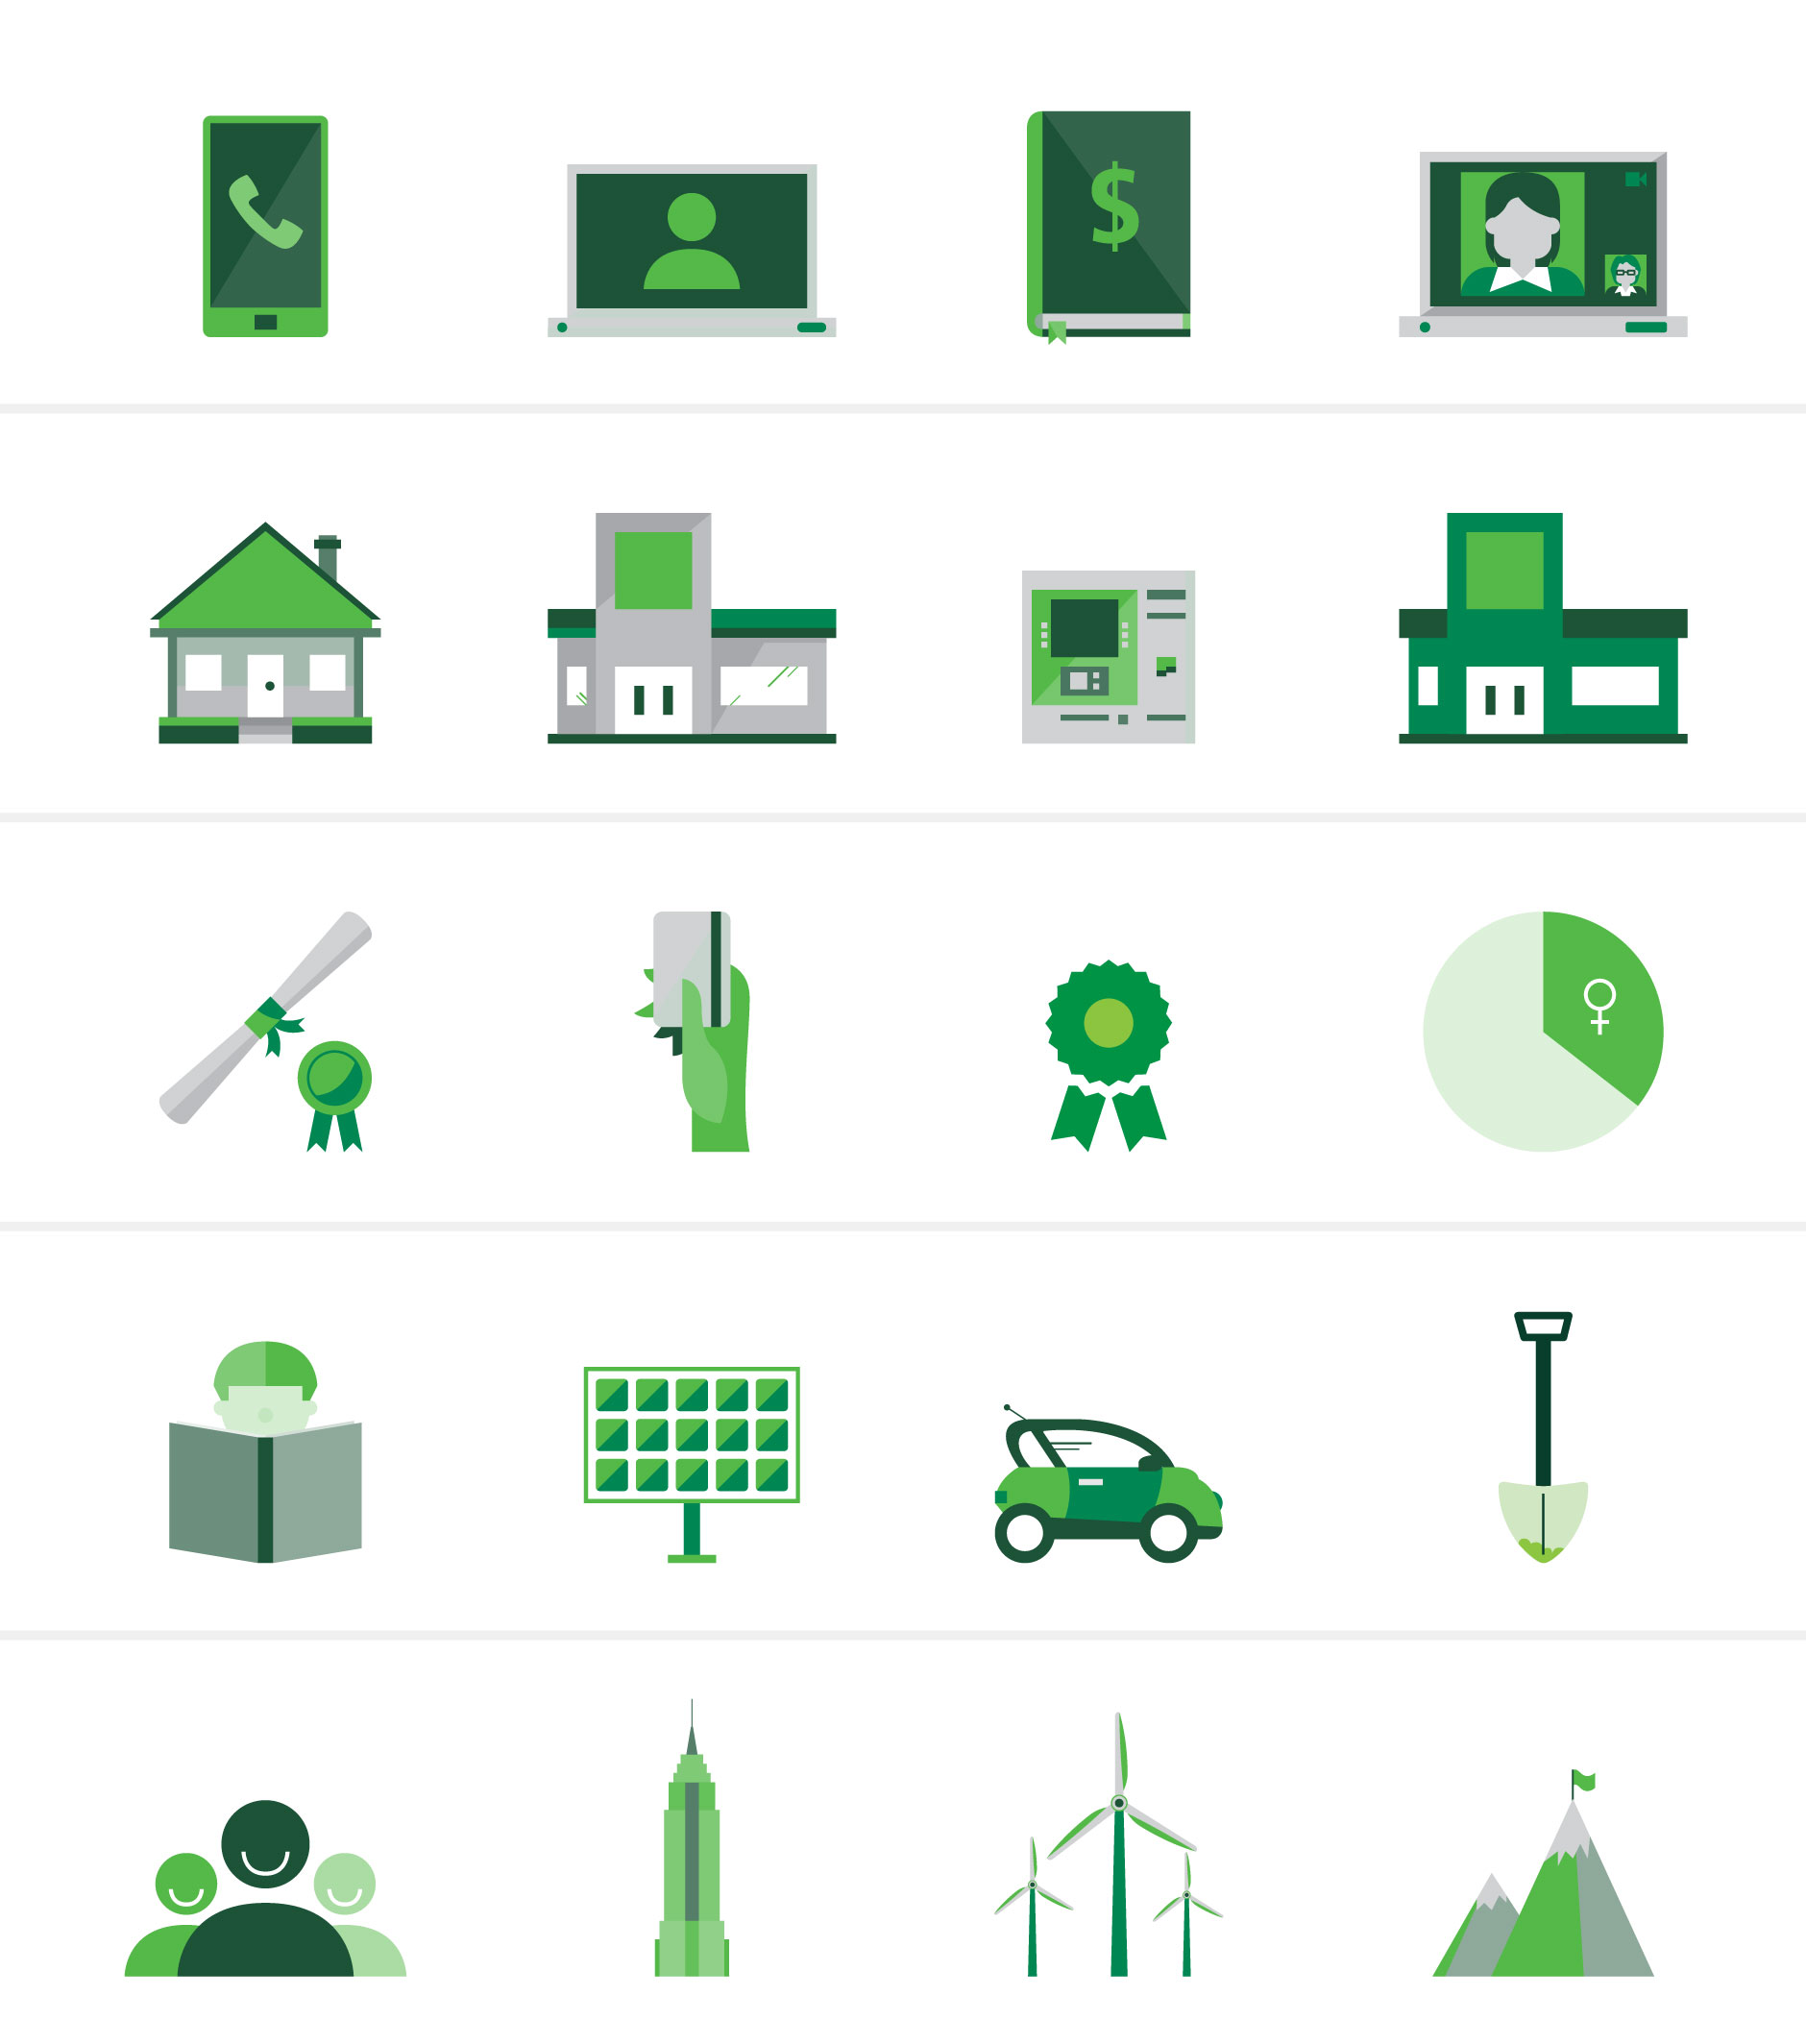 TD Corporate Responsibility icons